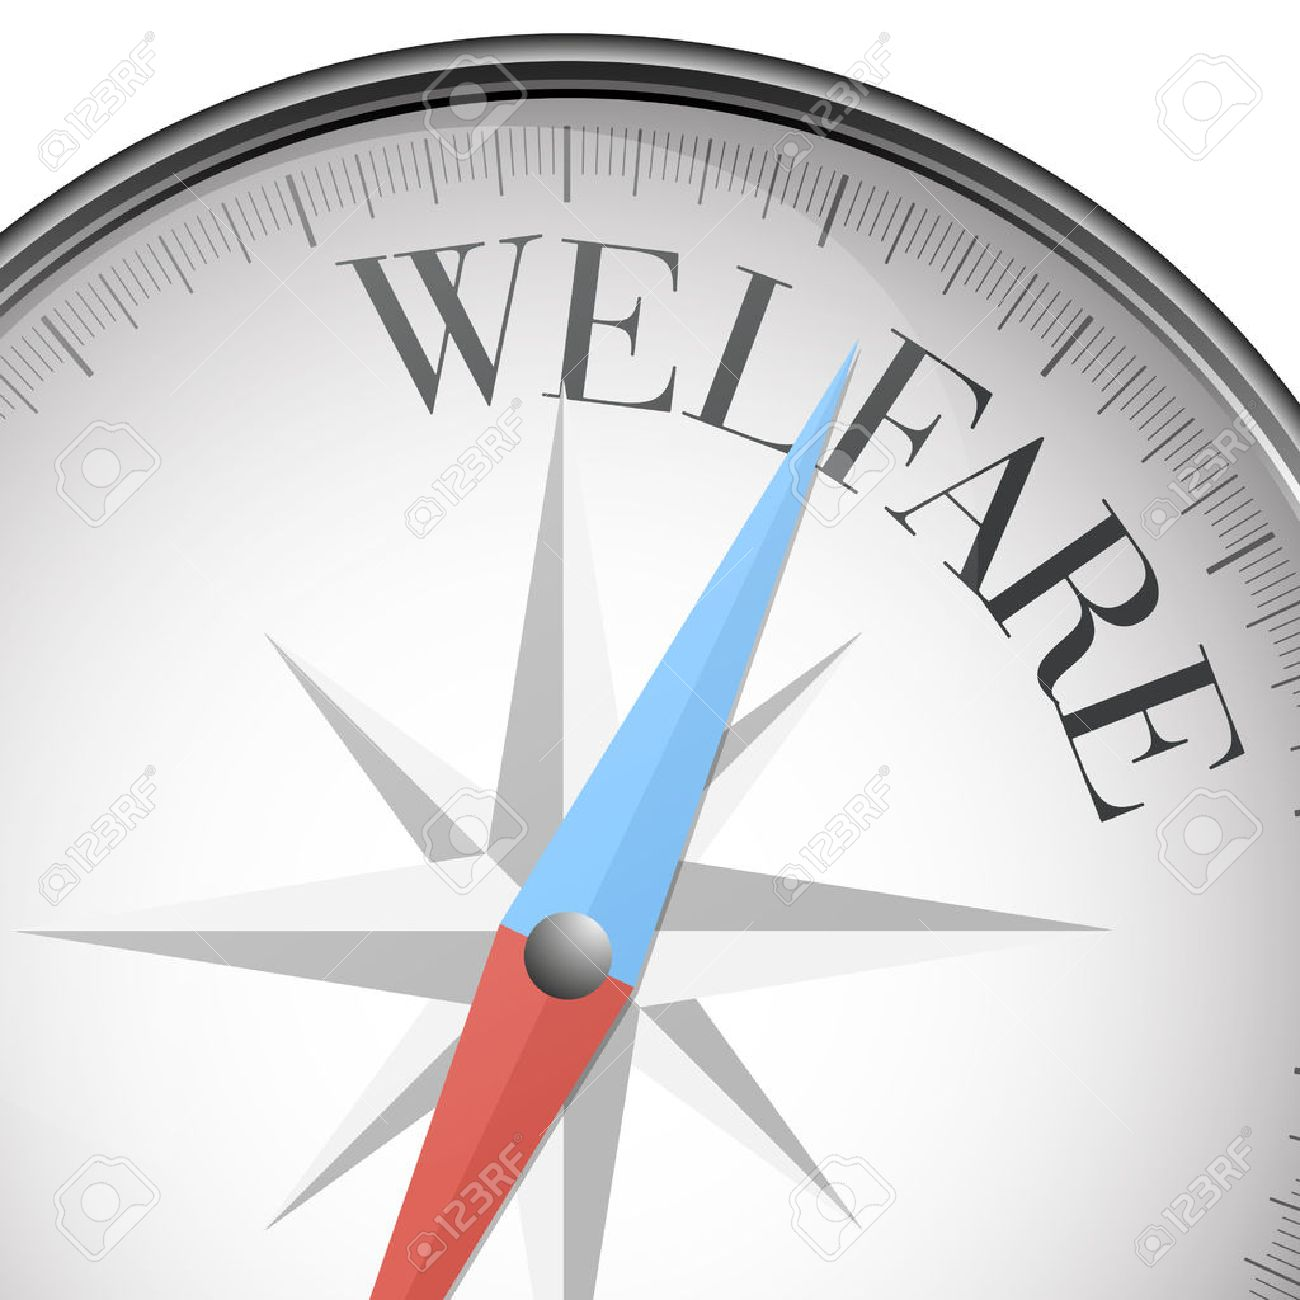 detailed illustration of a compass with welfare text, vector - 40339223